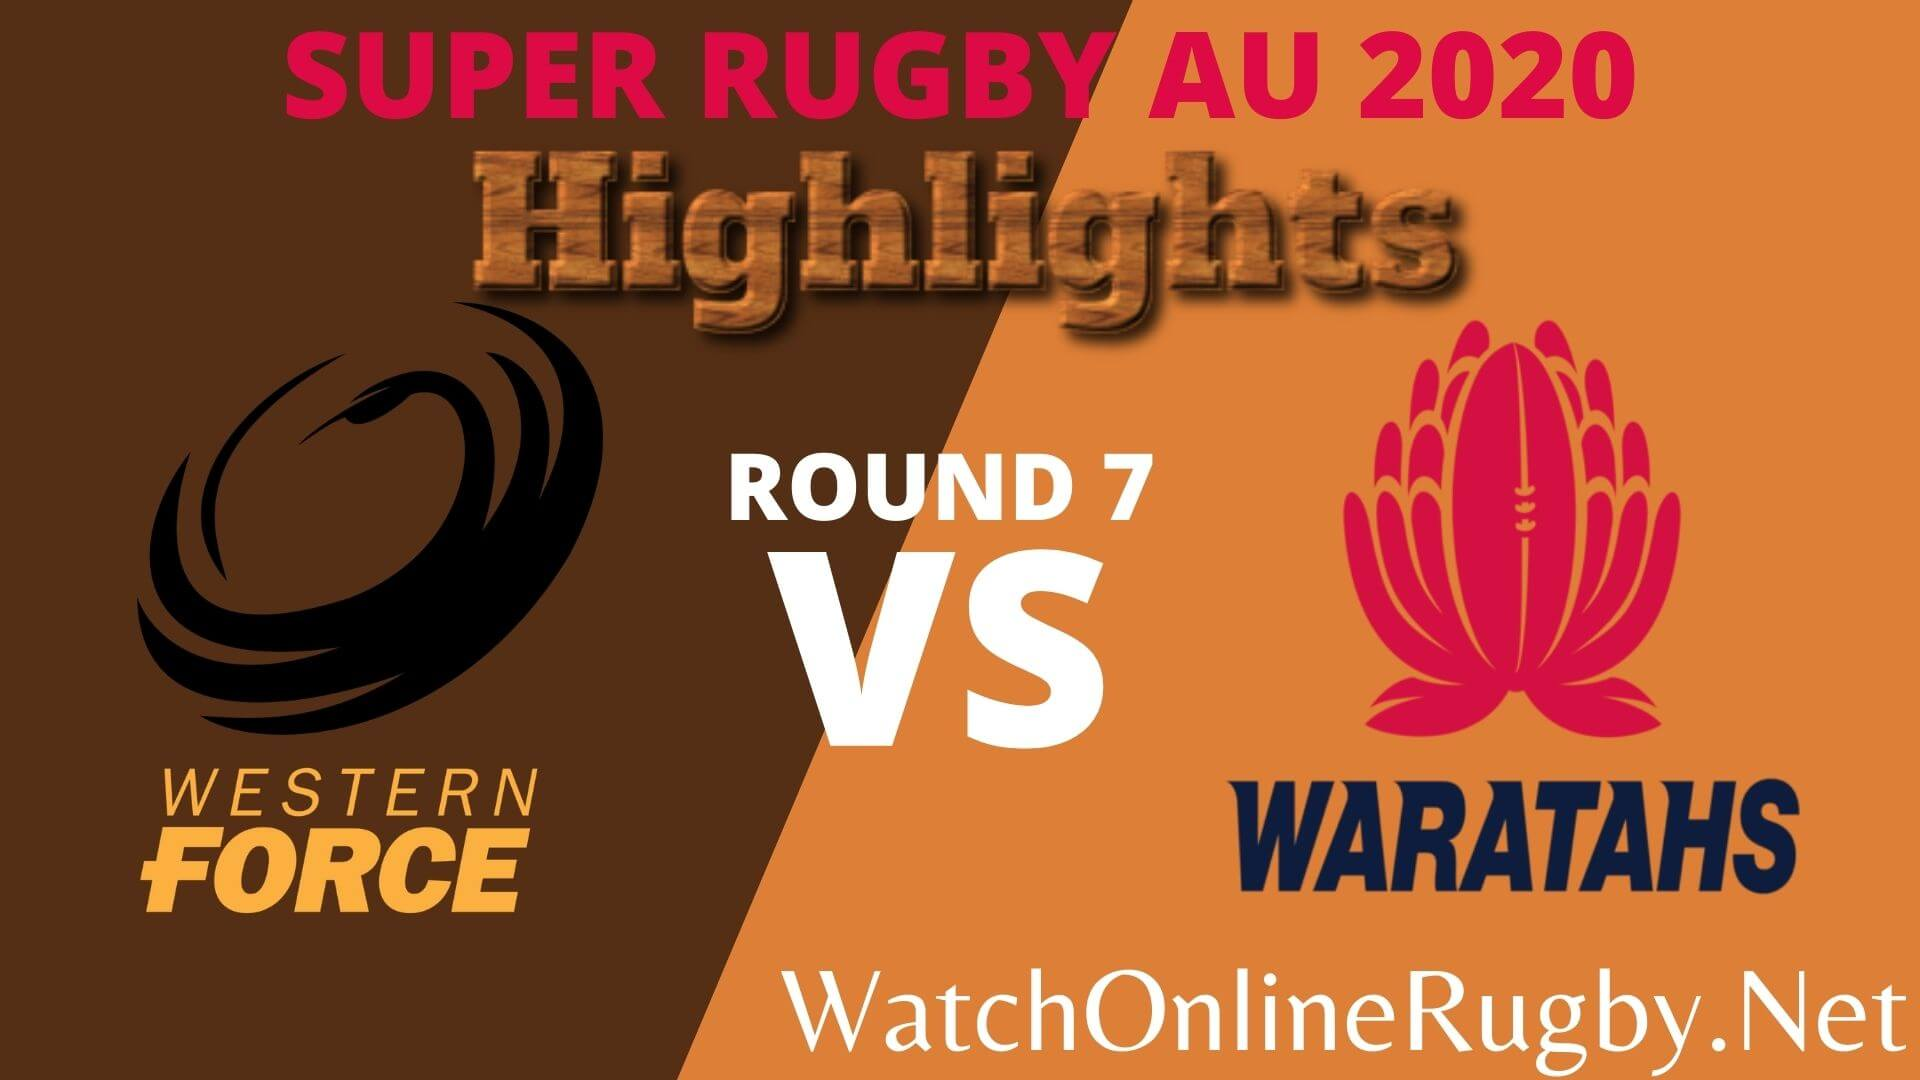 Western Force Vs Waratahs Highlights 2020 Rd 7 Super Rugby Au